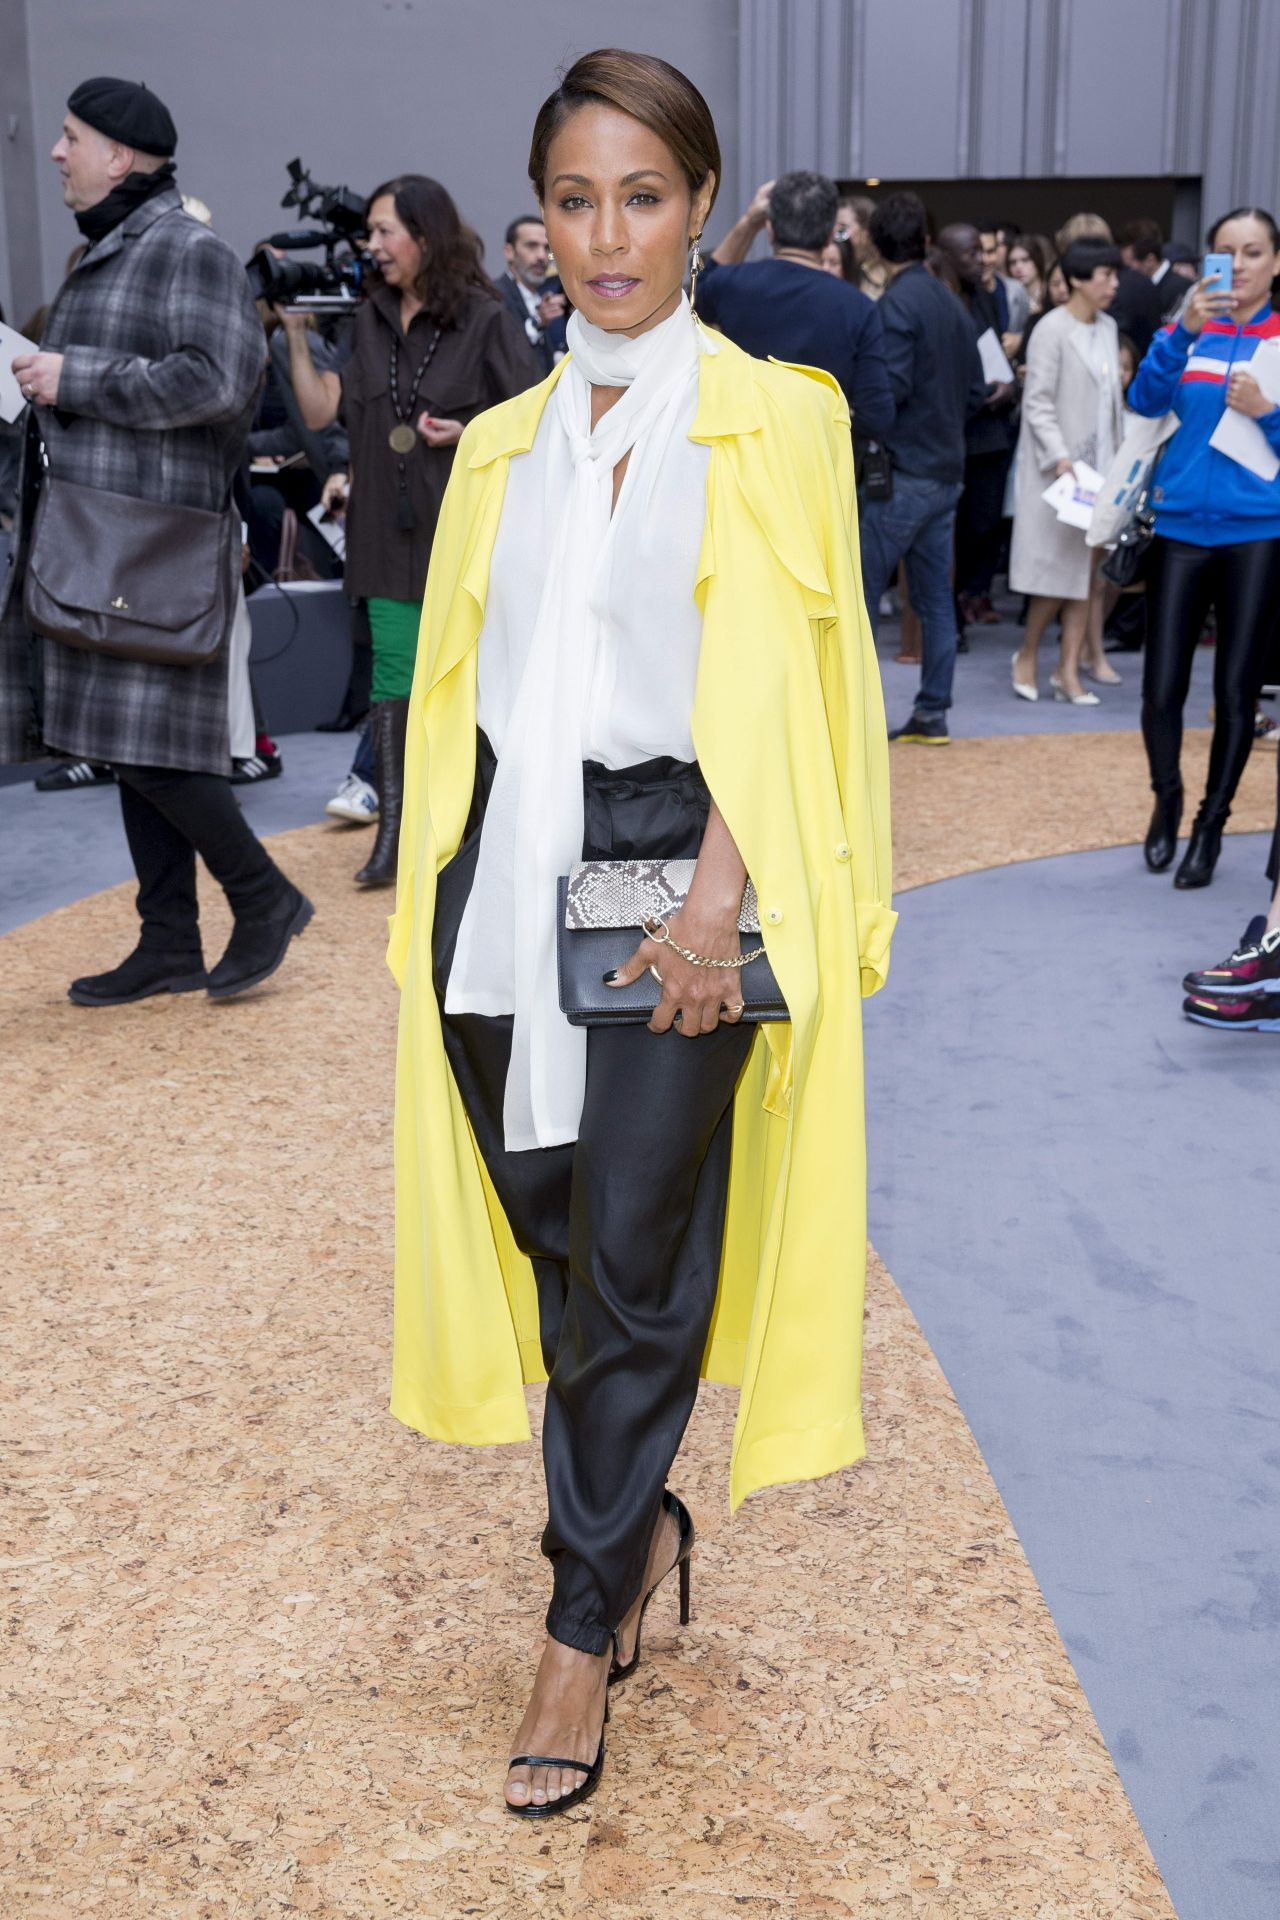 jada-pinkett-smith-at-the-chloé-fashion-show-october-2015_3